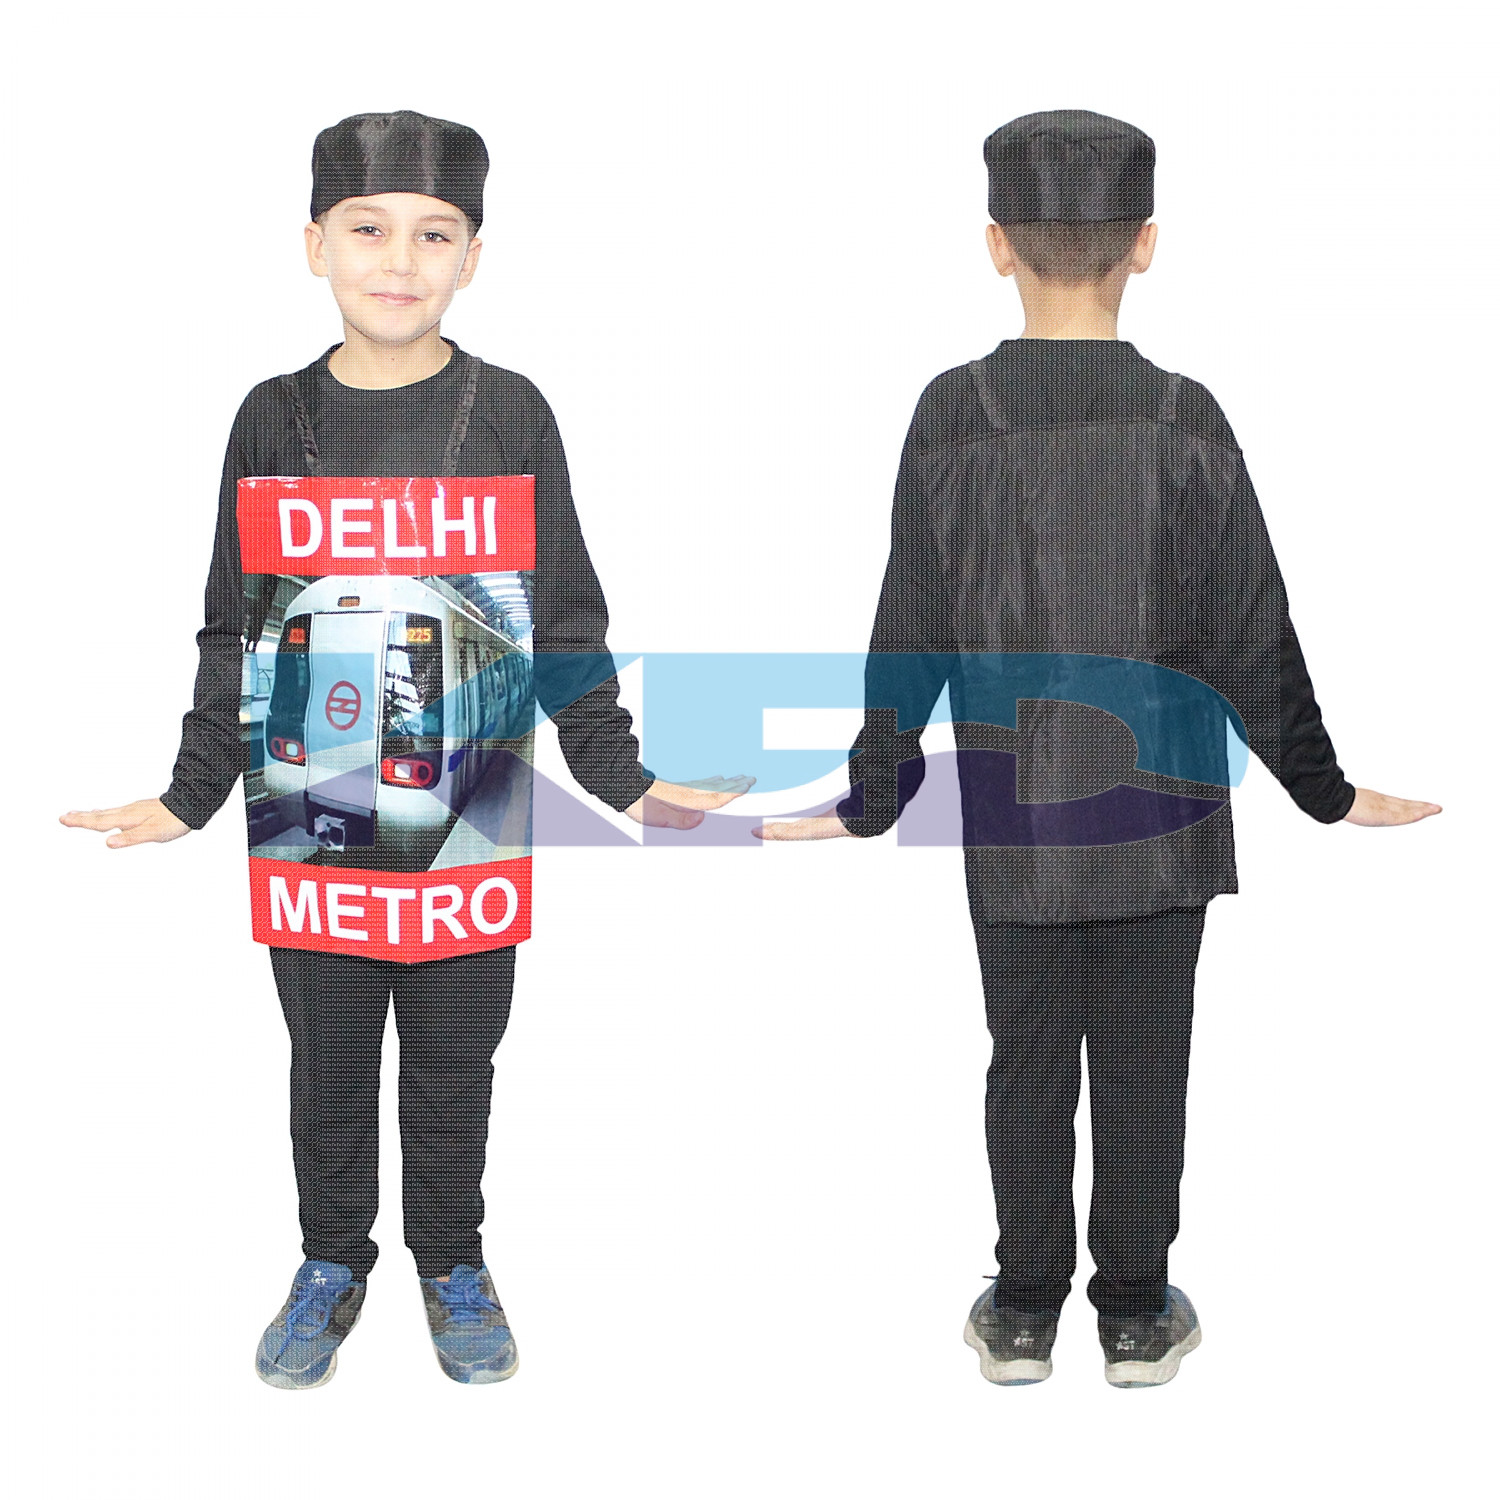 Metro Train Costume For Kids/Vehicle Fancy Dress For Kids/Delhi Metro Costume/For Kids Annual function/Theme Party/Competition/Stage Shows/Birthday Party Dress